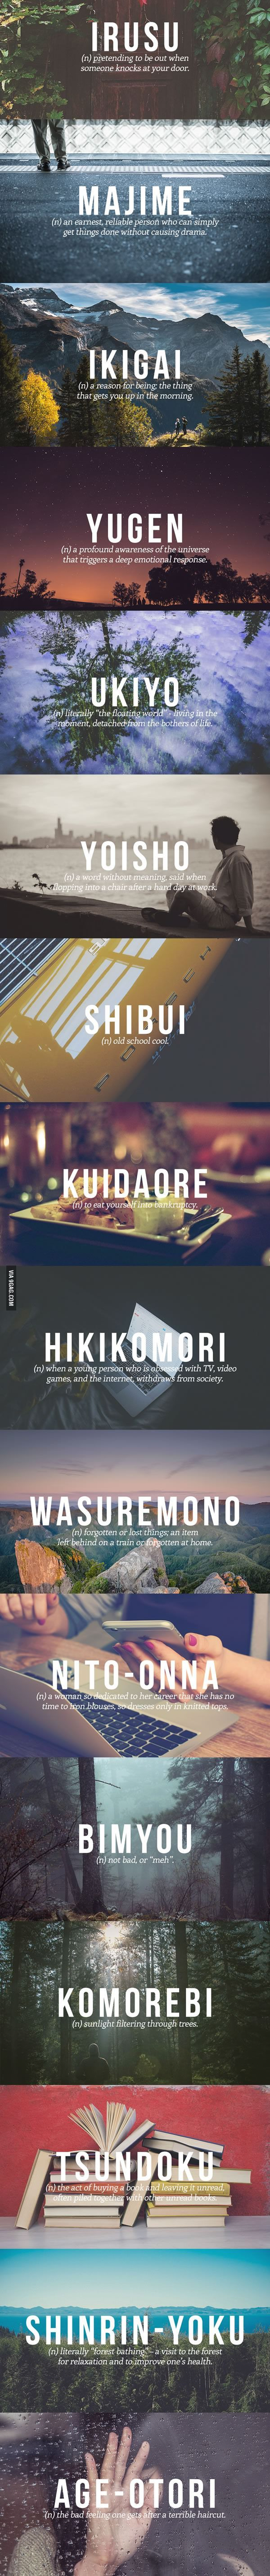 The Perfect Japanese Words You Need In Your Life  the real japan, real japan, resources, tips, tricks, inspiration, idea, guide, japan, japanese, explore, adventure, tour, trip, product, tool, map, information, tourist, plan, planning, tools, kit, products http://www.therealjapan.com/subscribe